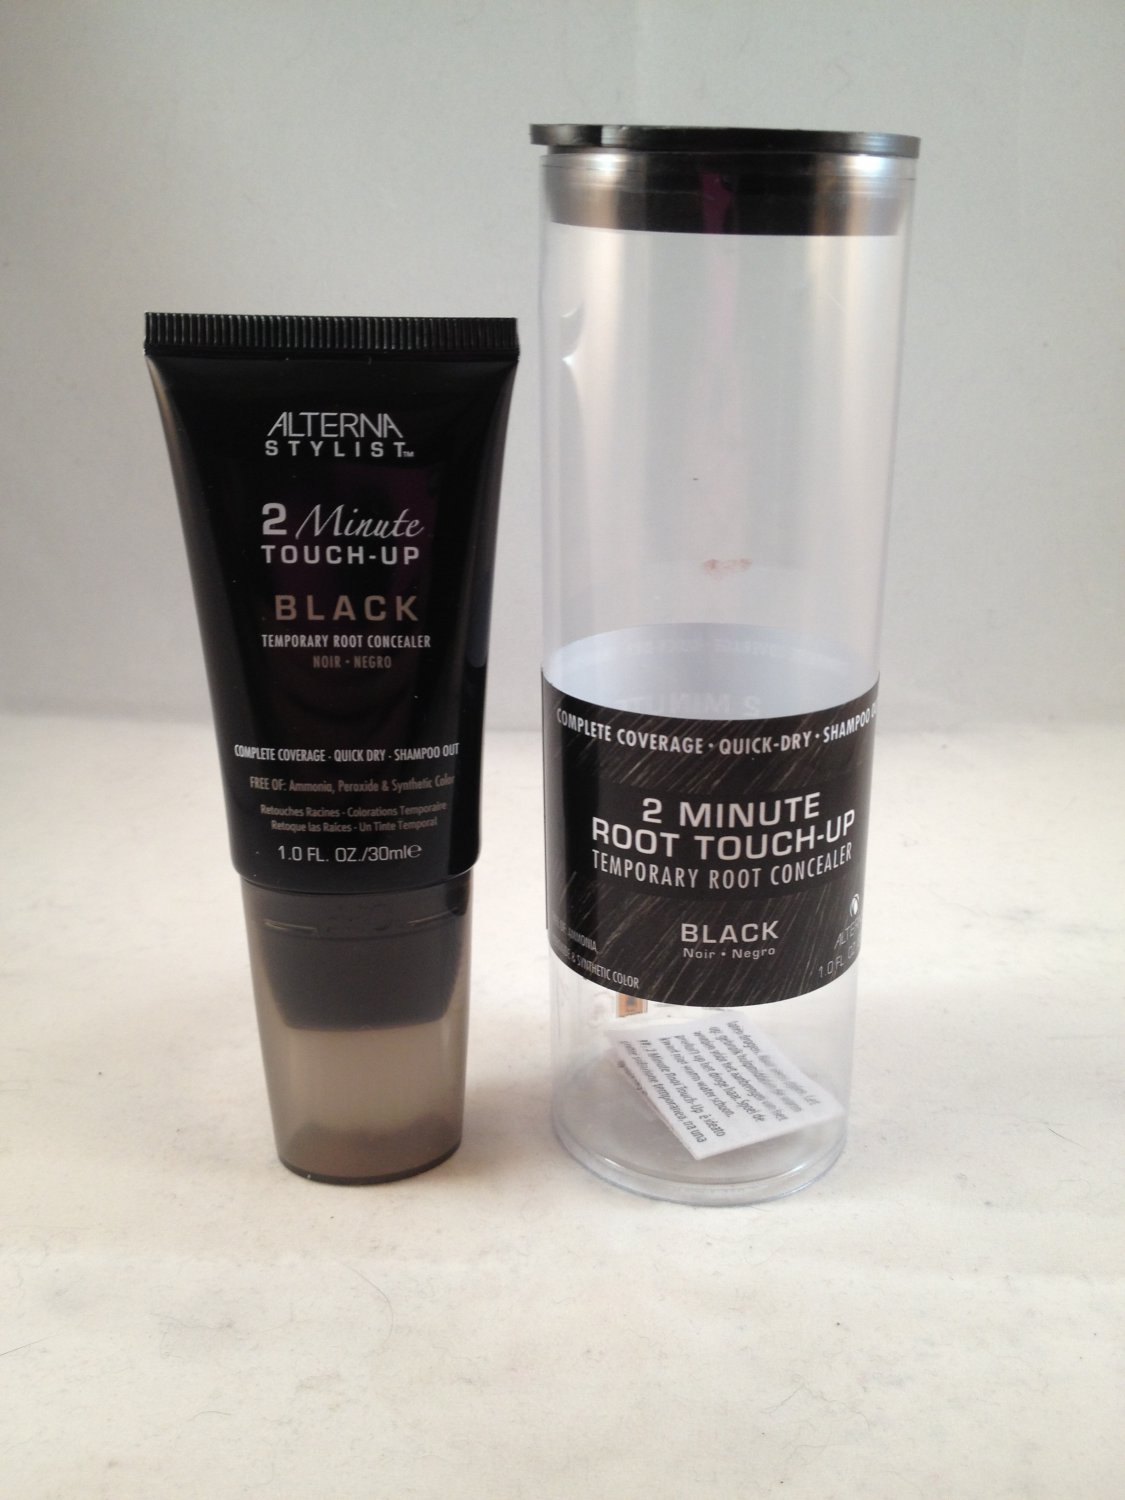 Alterna Stylist 2 Minute Root Touch-Up Black Temporary Root Concealer hair color